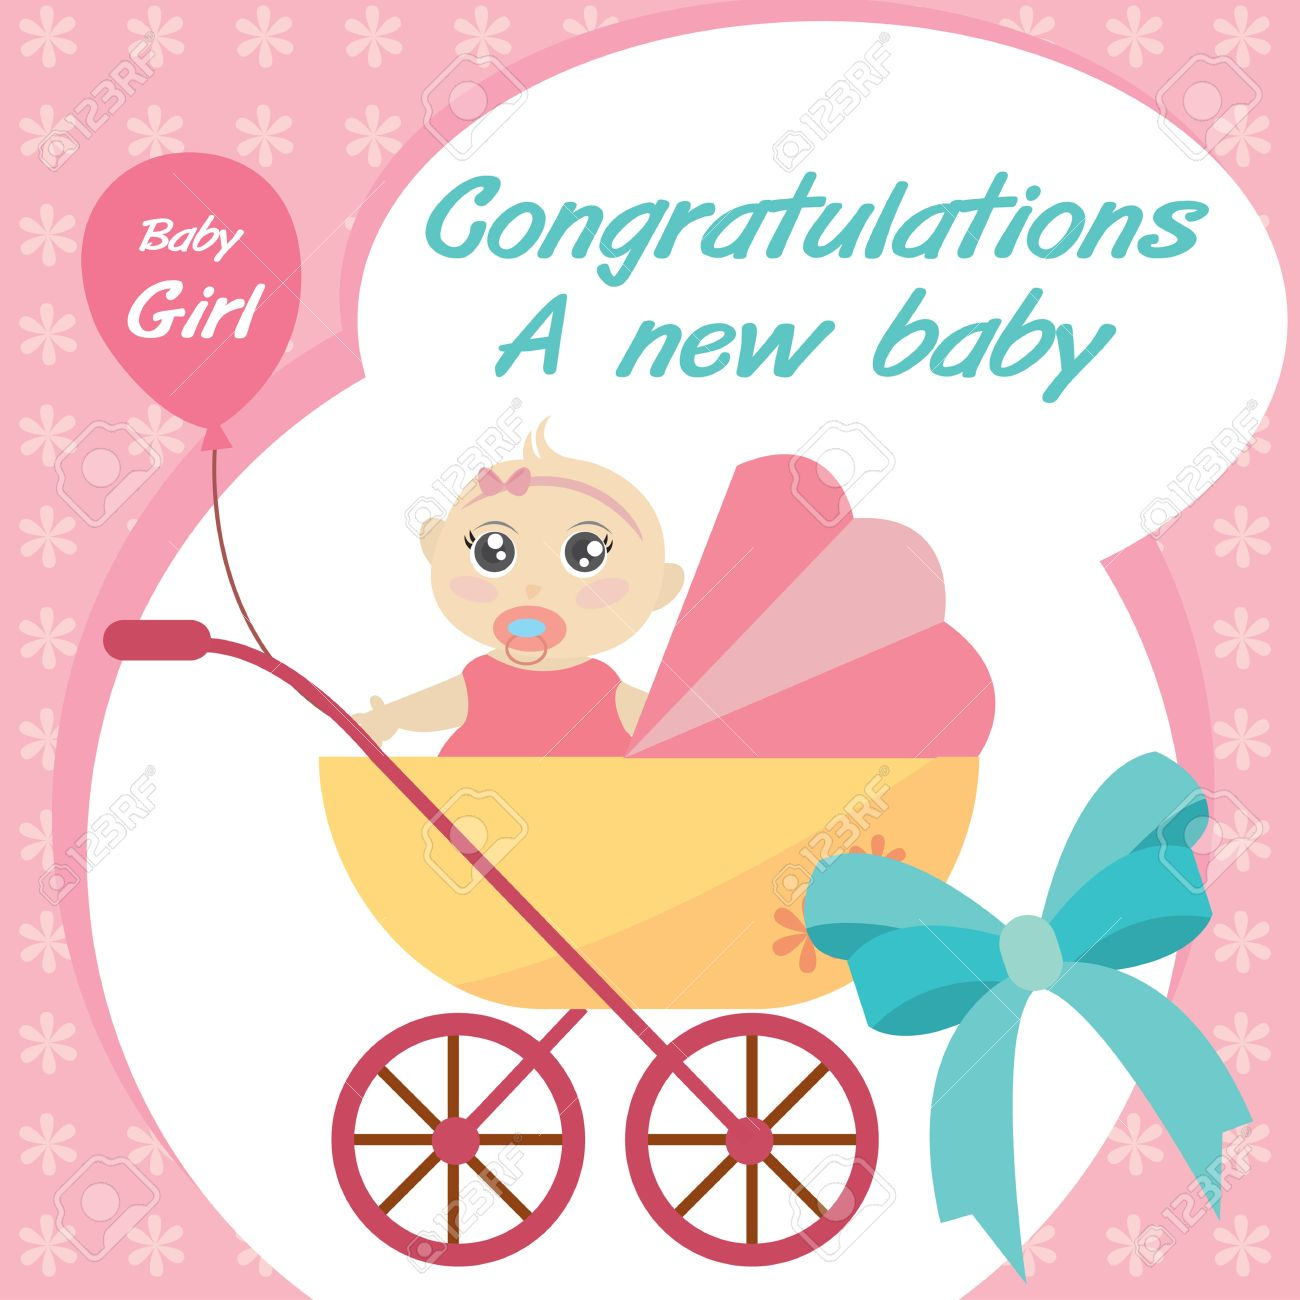 New baby born cards juvecenitdelacabrera new baby born cards m4hsunfo